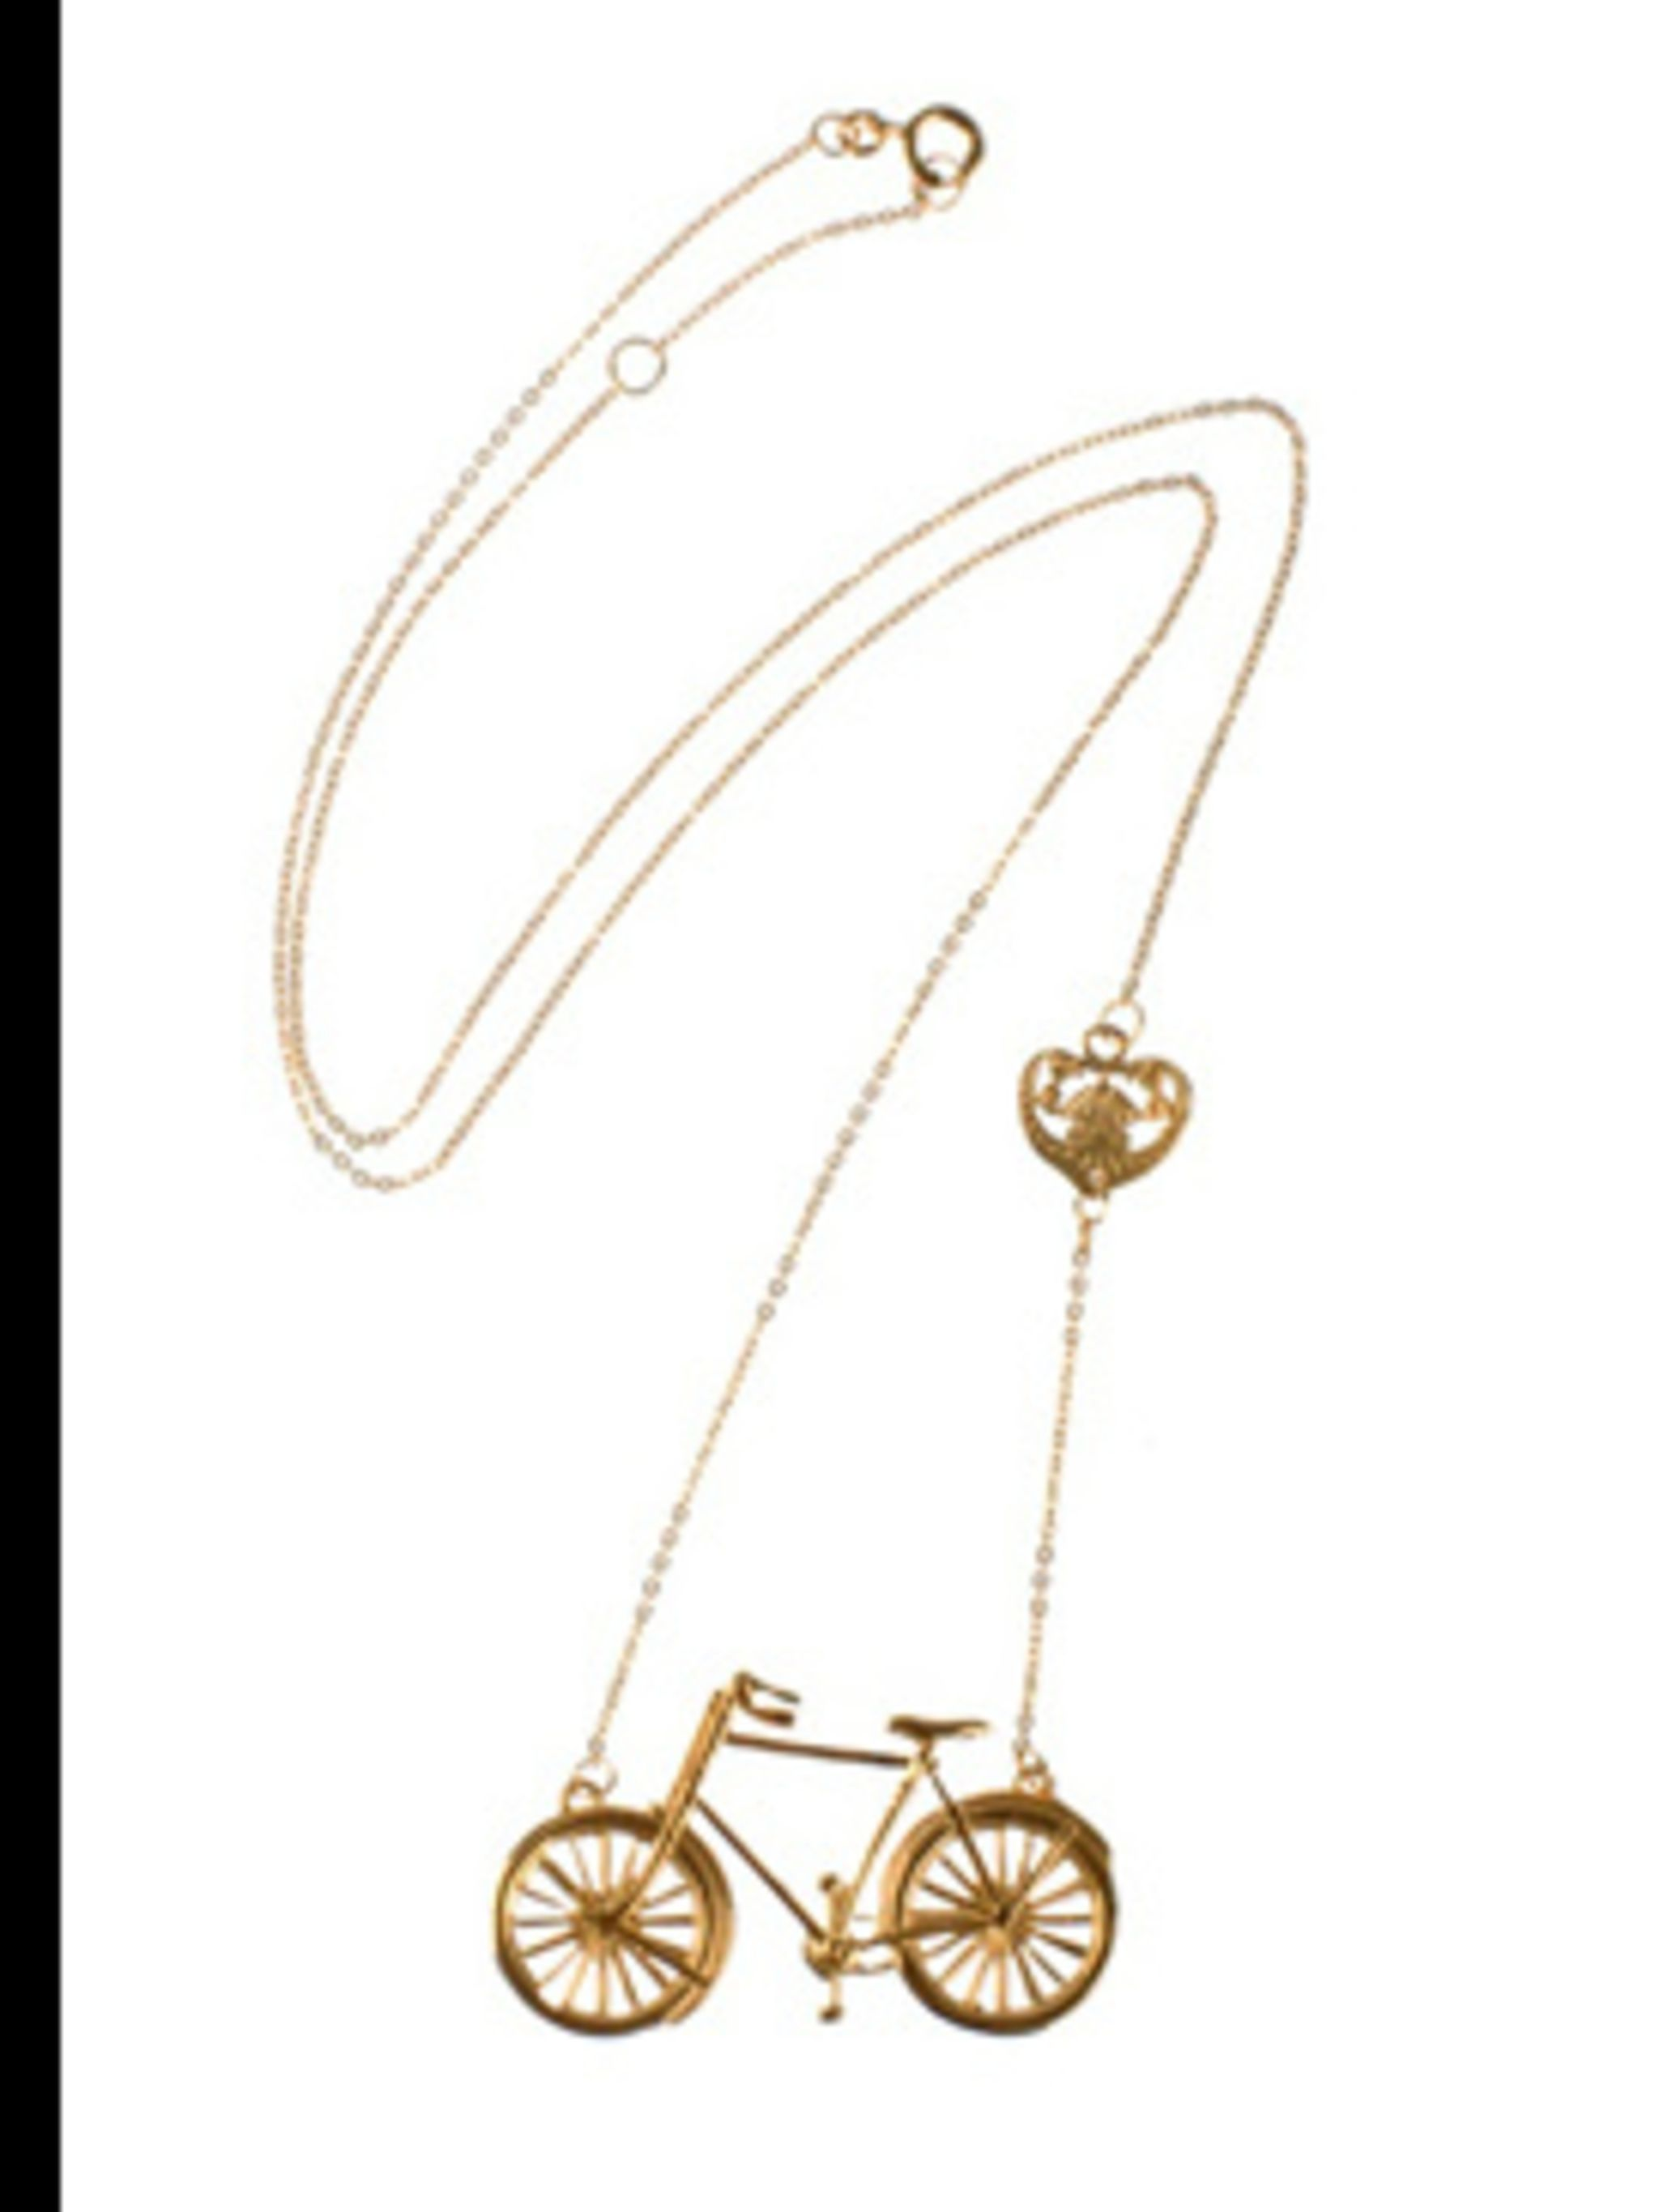 "<p>Bike Pendant, £96.00 by <a href=""http://www.farfetch.com/shopping/women/jewellery/item10008448.aspx?storeid=9010"">Beyond The Valley</a></p>"